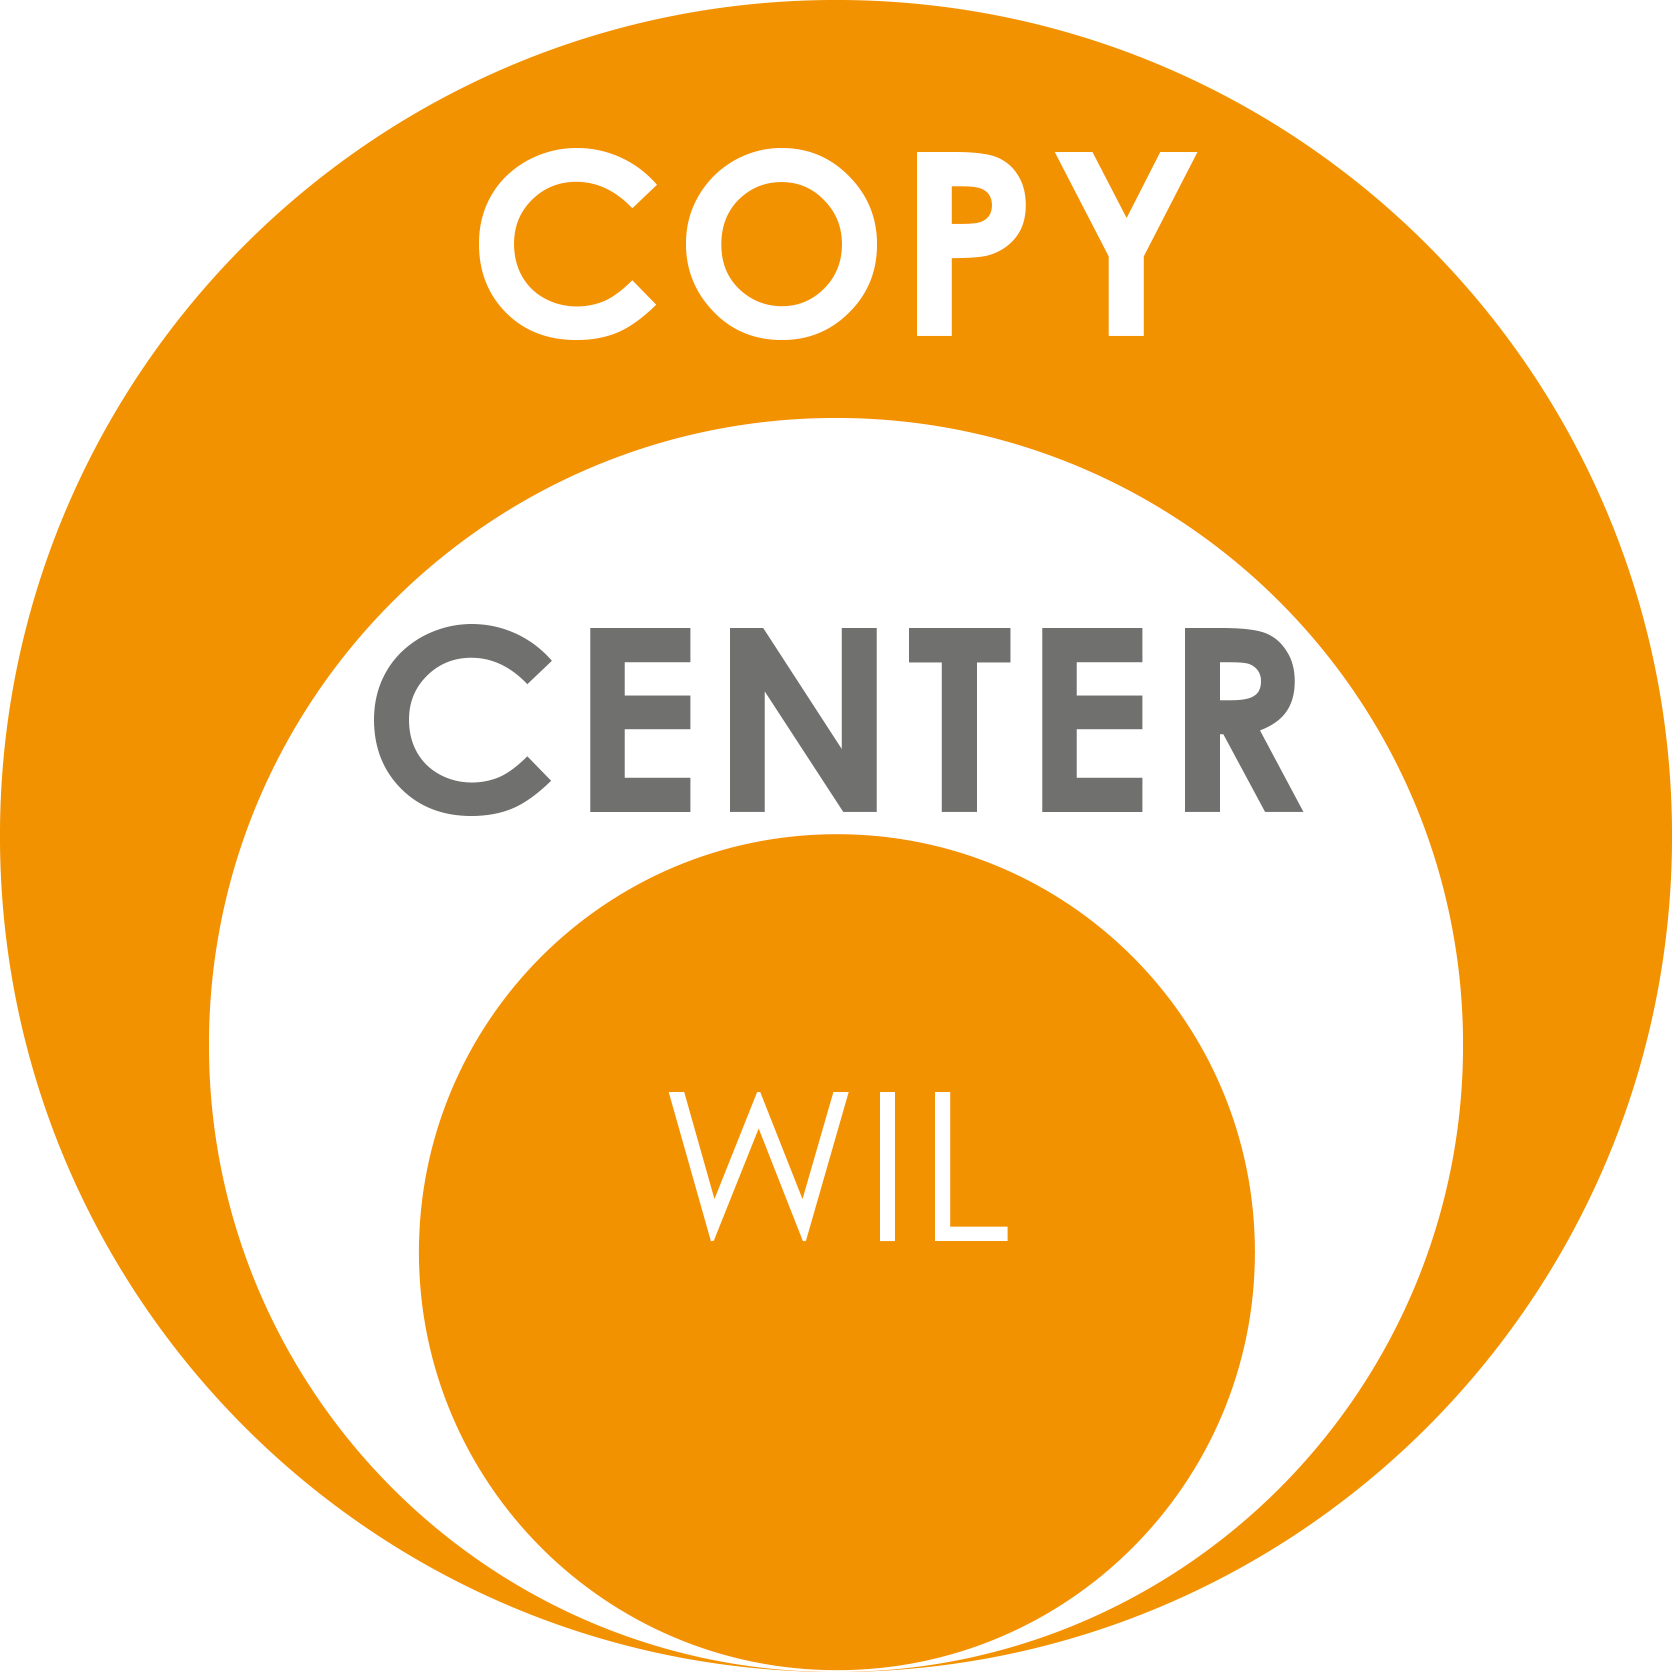 Copy Center Wil